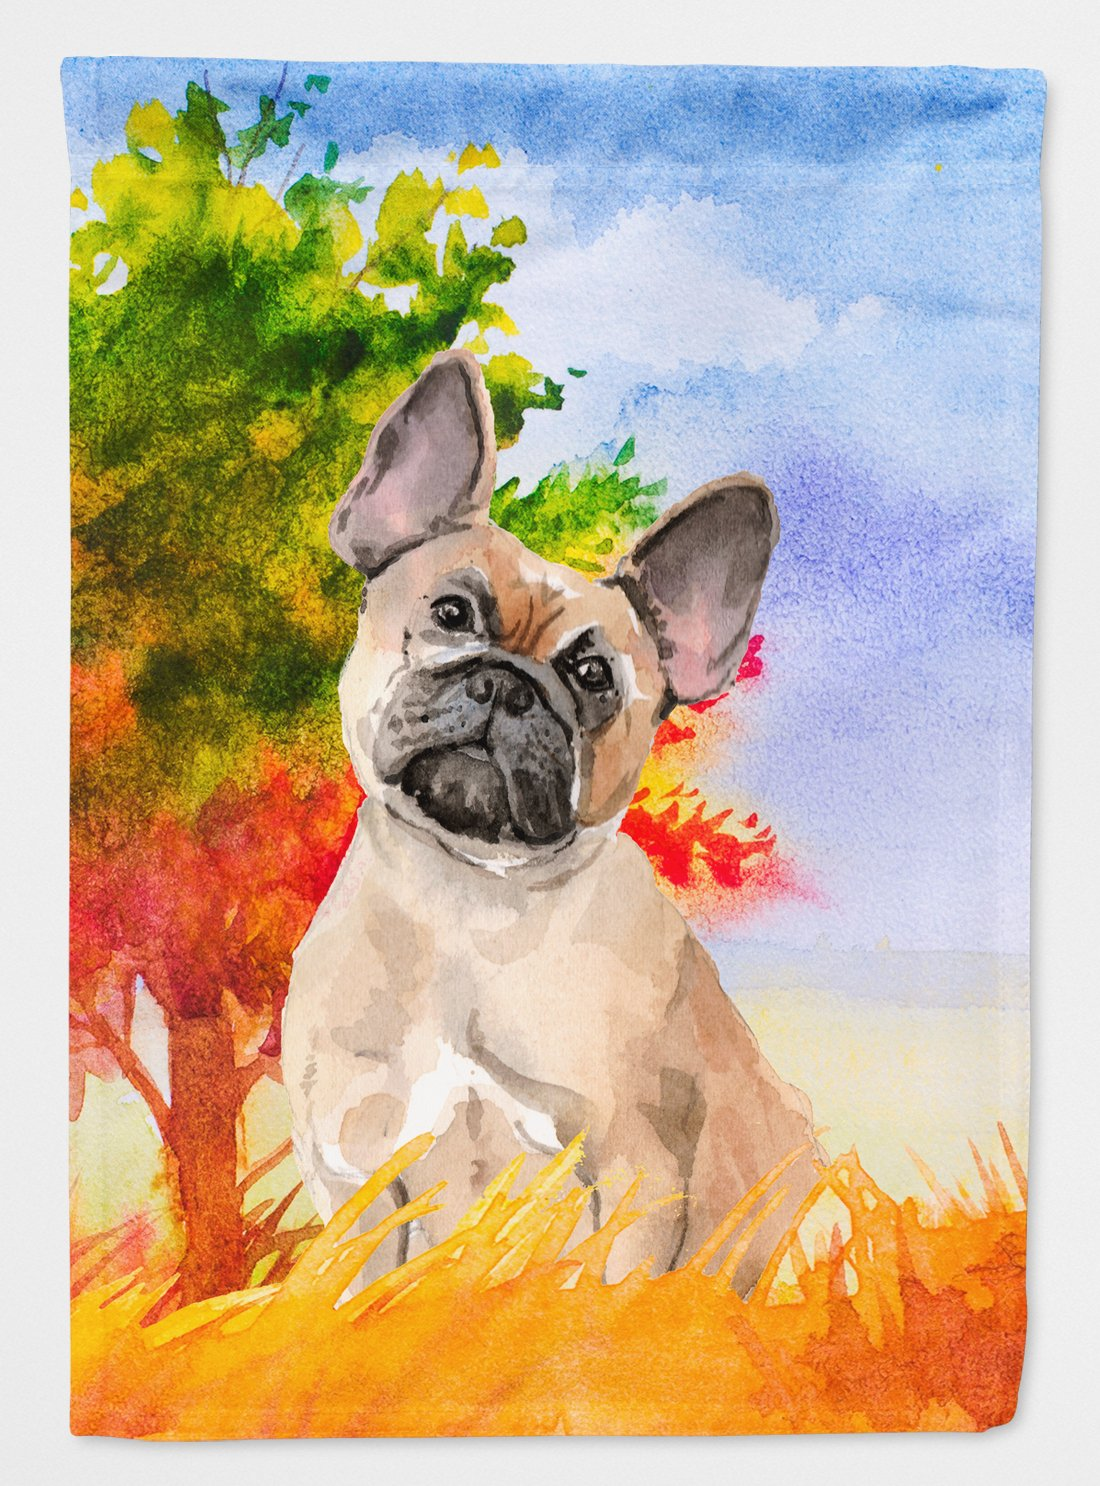 Fall Fawn French Bulldog Flag Garden Size CK1943GF by Caroline's Treasures